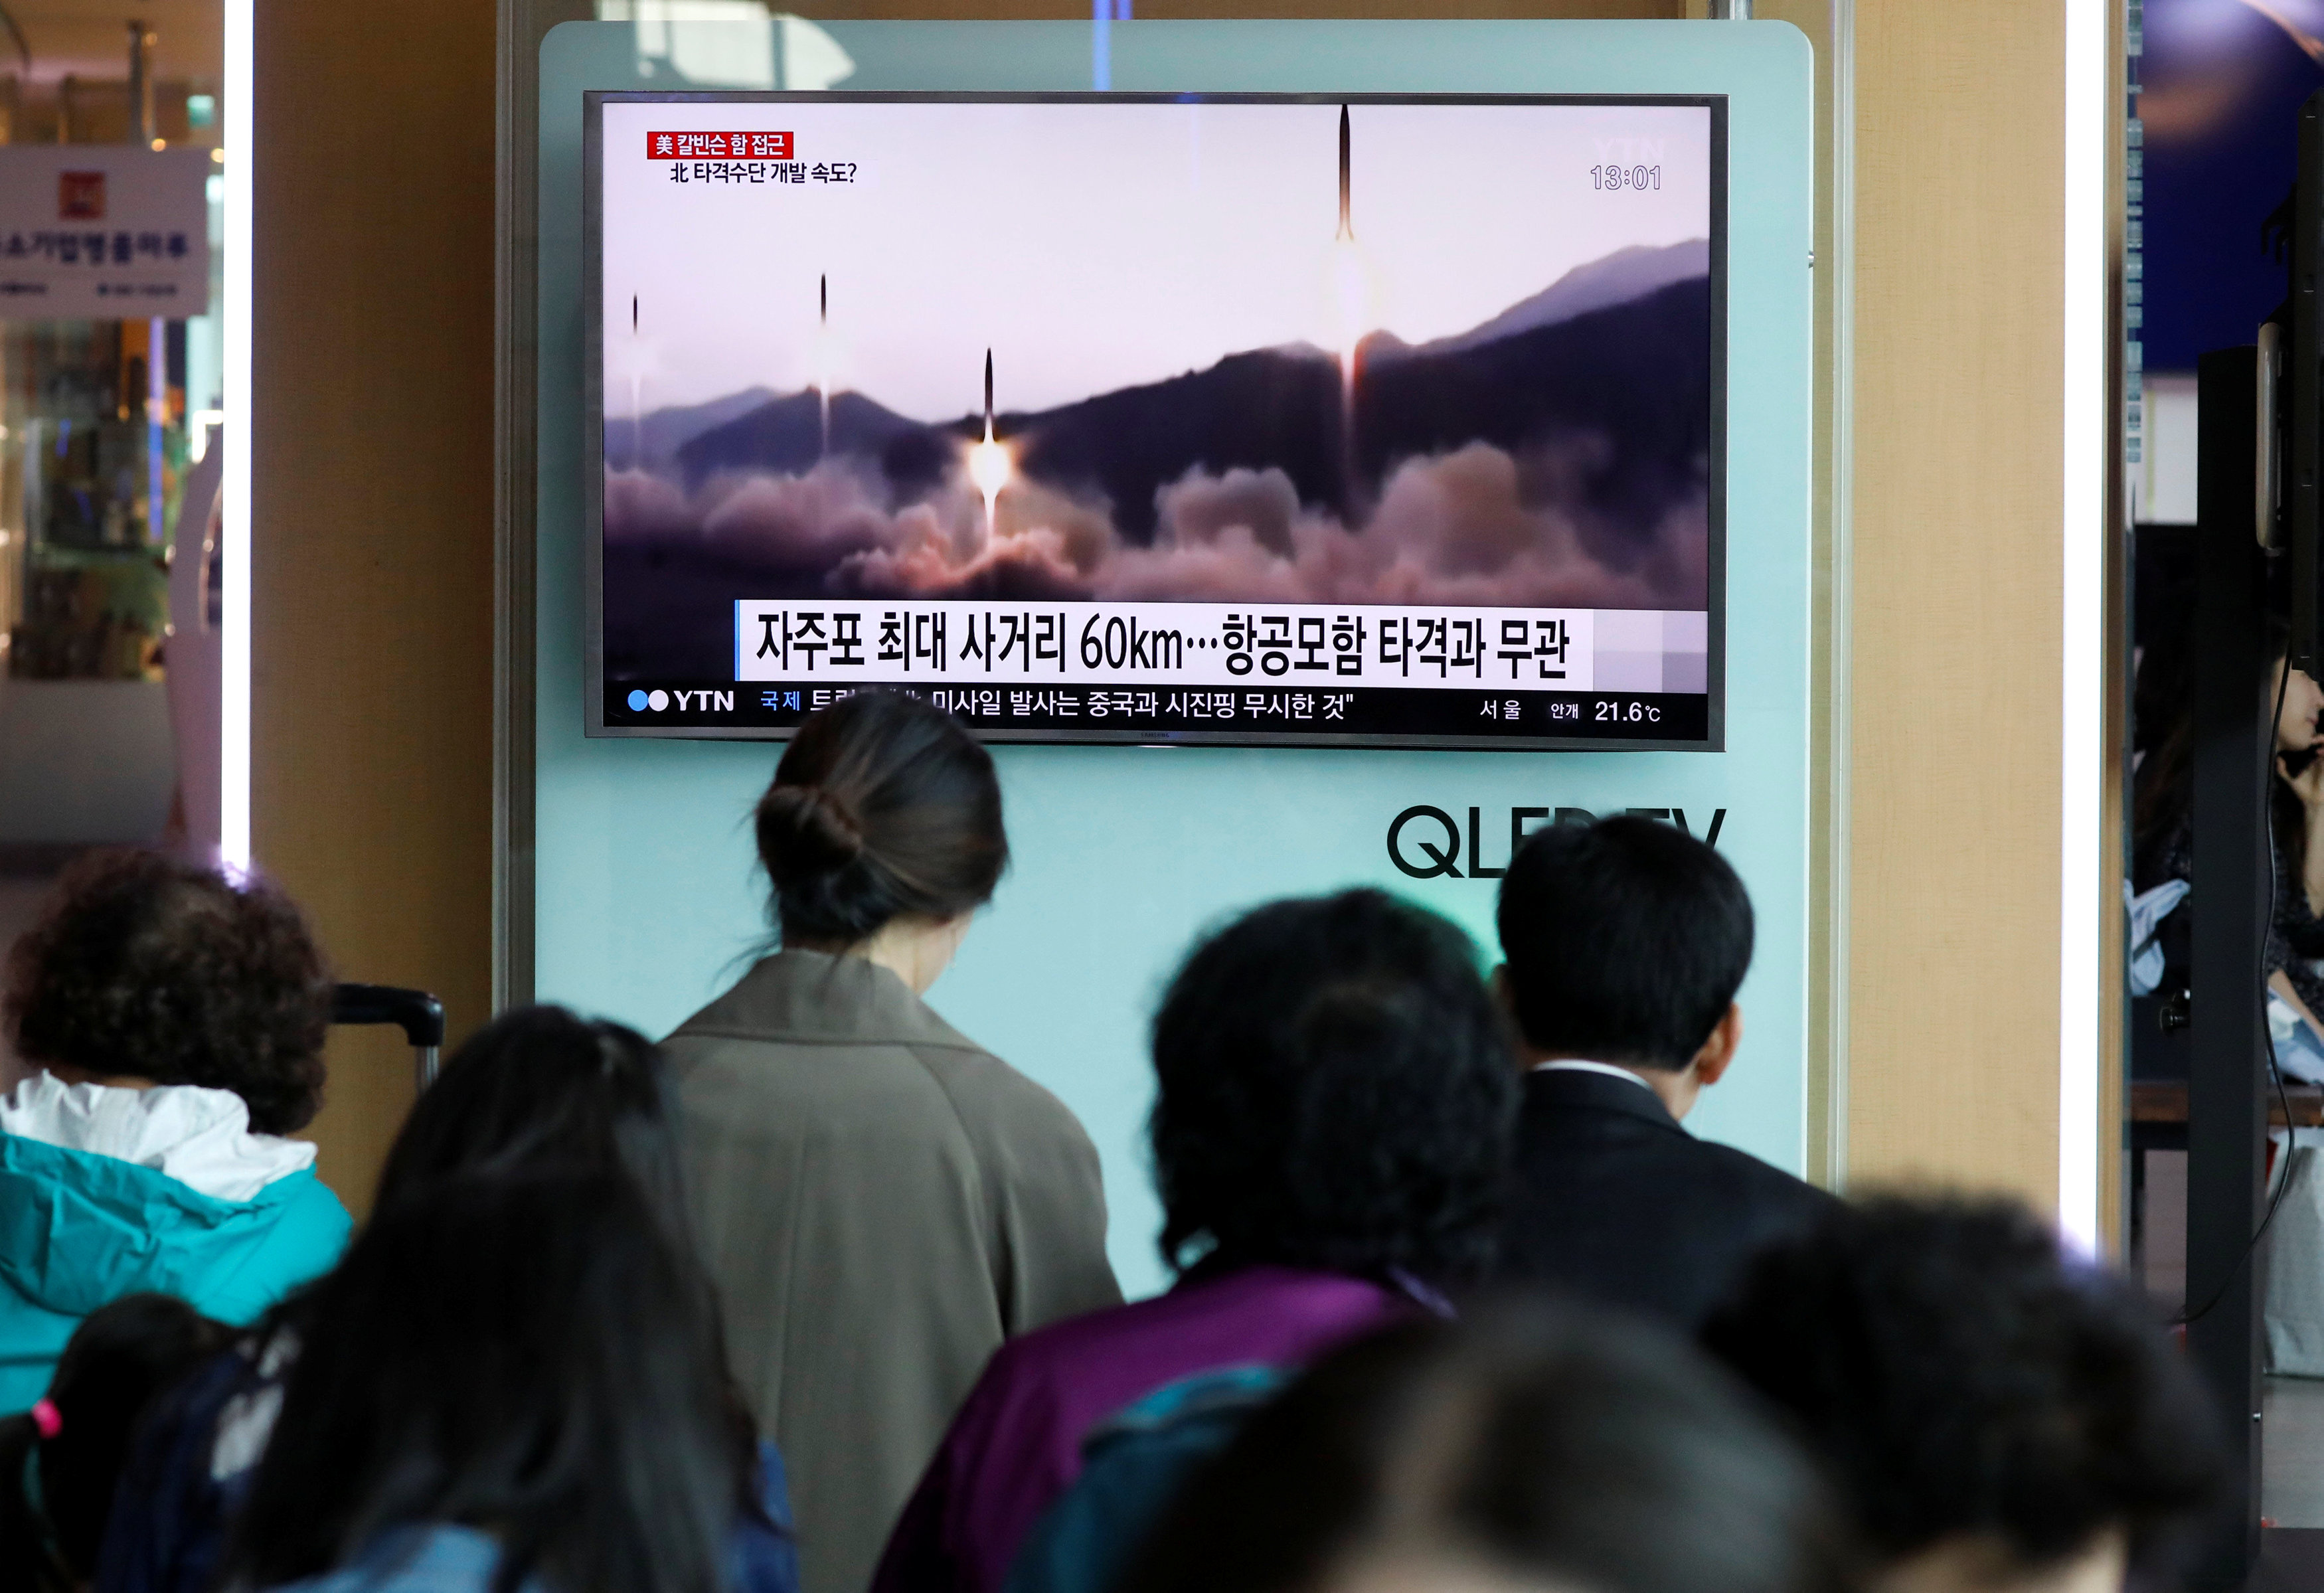 People watch a TV broadcasting of a news report on North Korea's missile launch, at a railway station in Seoul, South Korea. REUTERS/Kim Hong-Ji